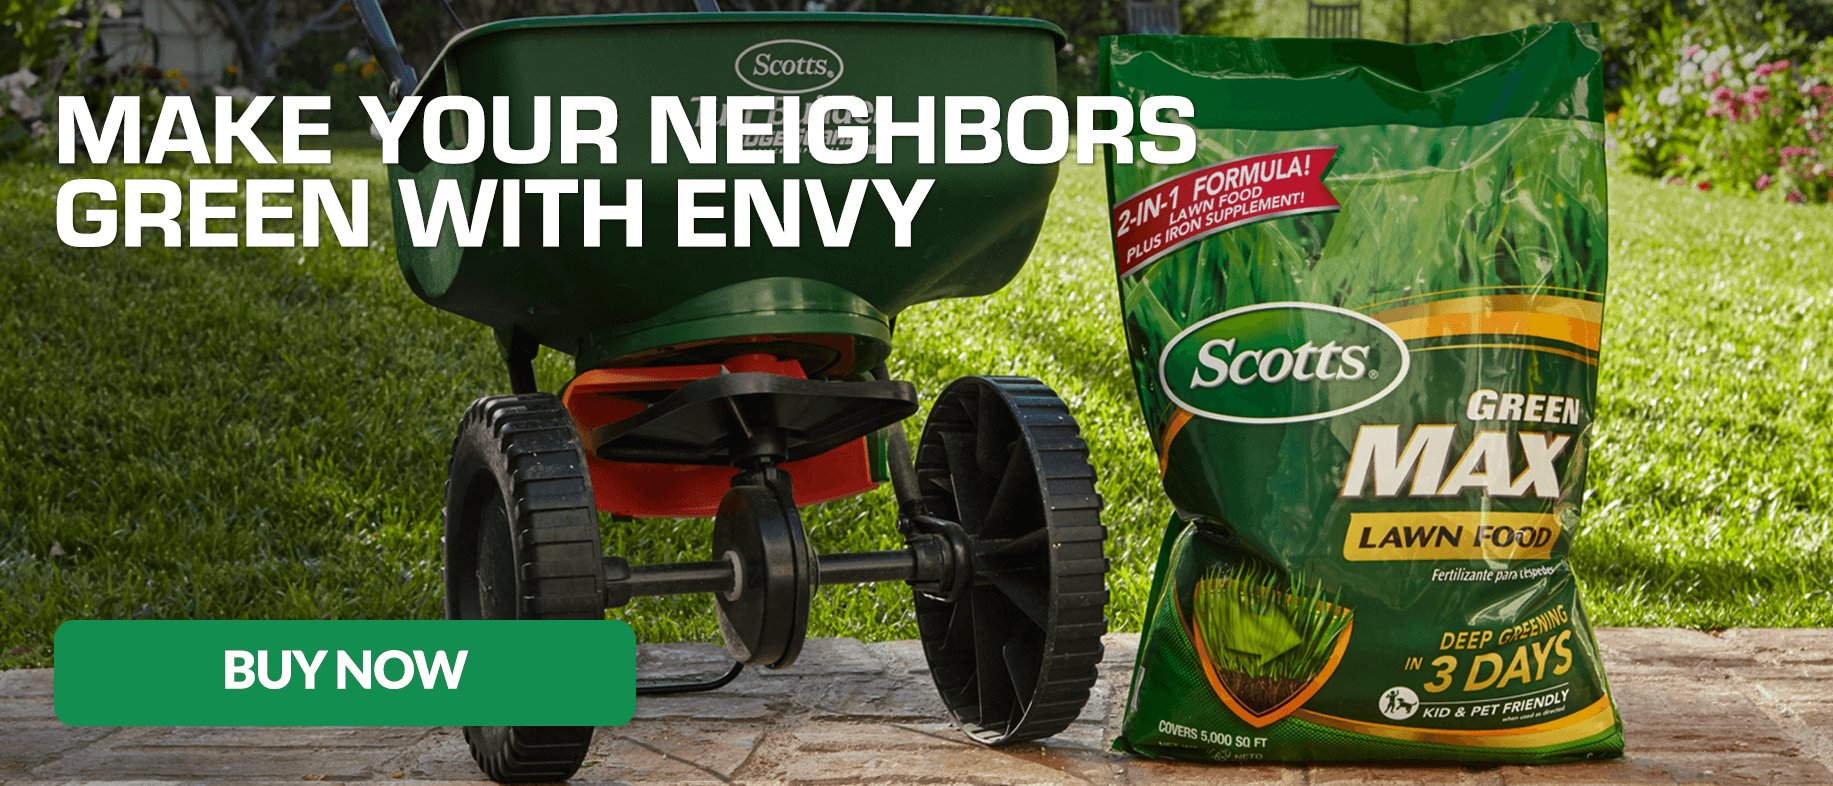 Make Your Neighbors Green With Envy